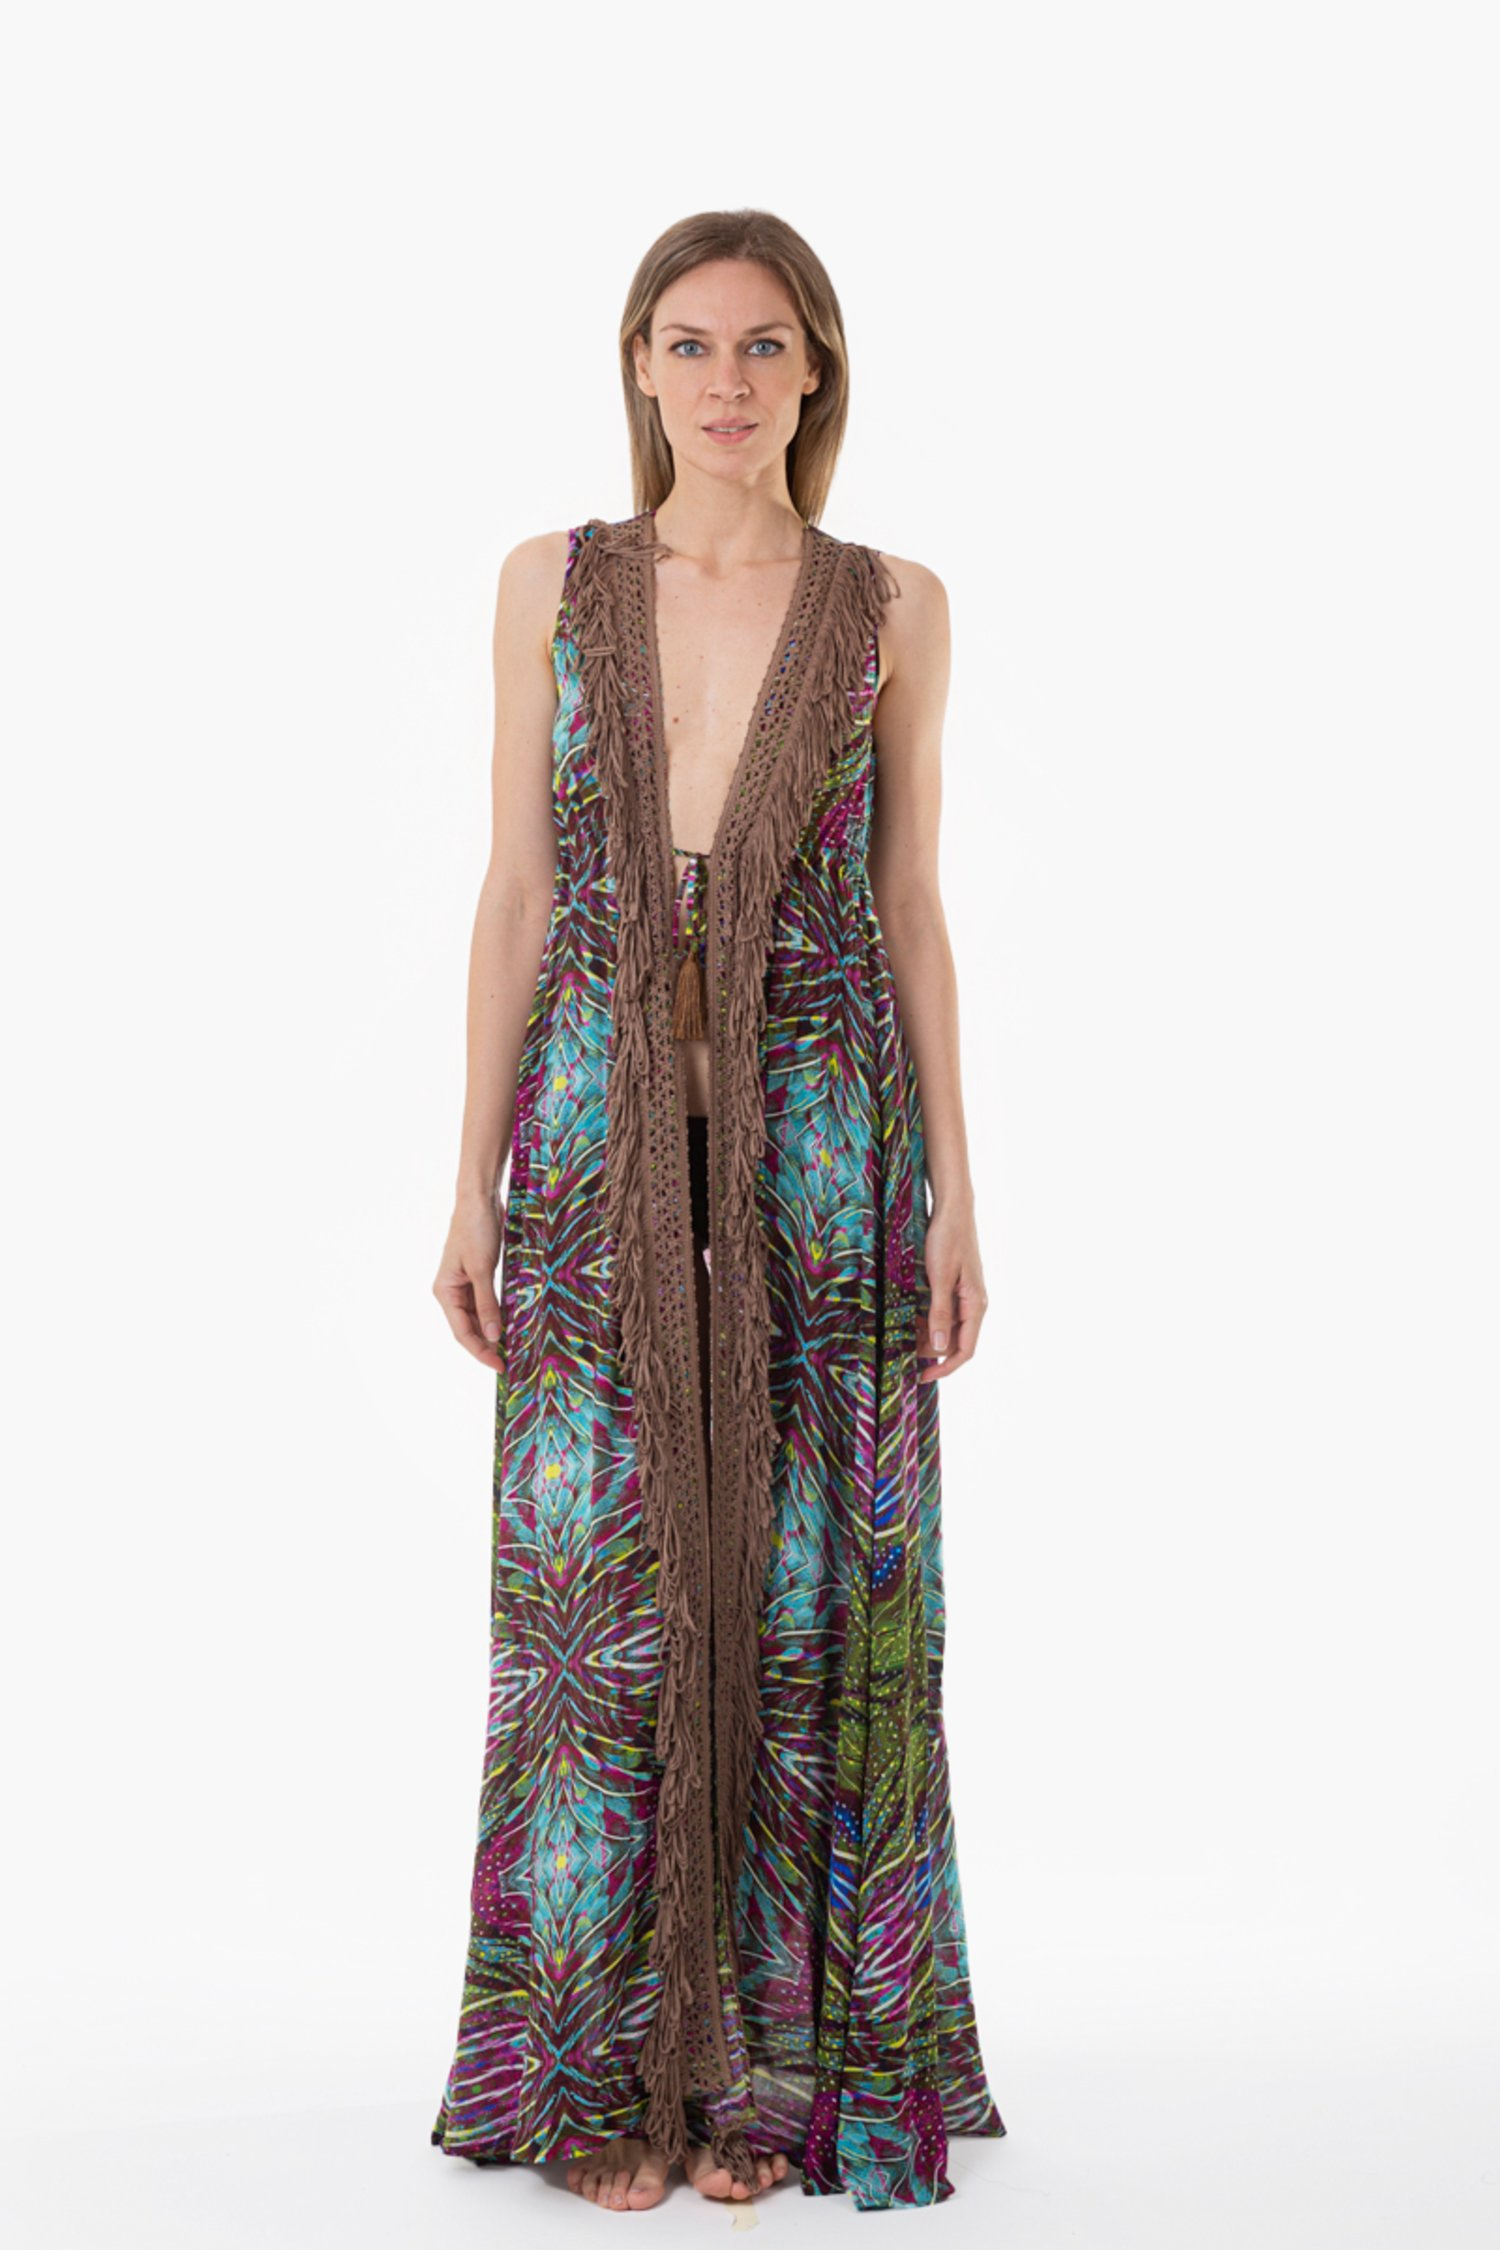 LONG DRESS WITH FRINGES - Plumage Azzurro